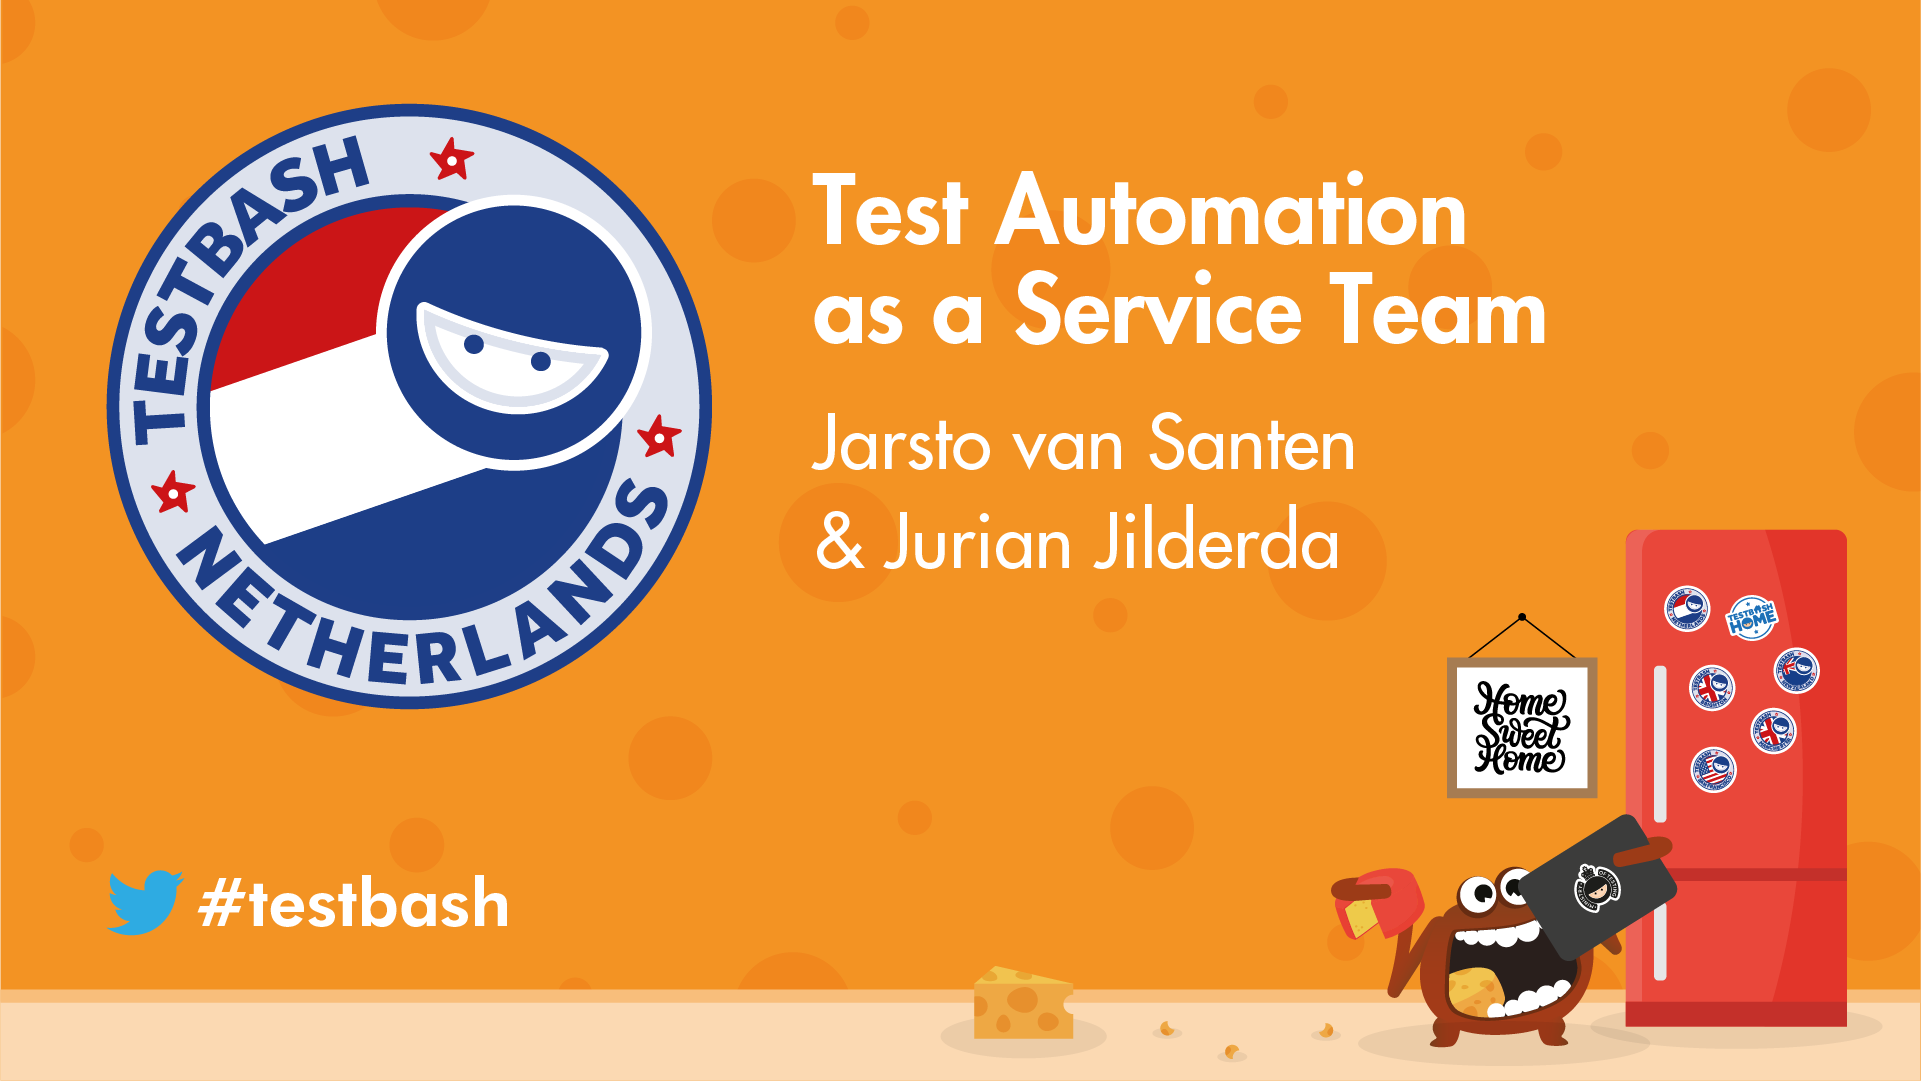 Test Automation as a Service Team - Jurian Jilderda & Jarsto van Santen